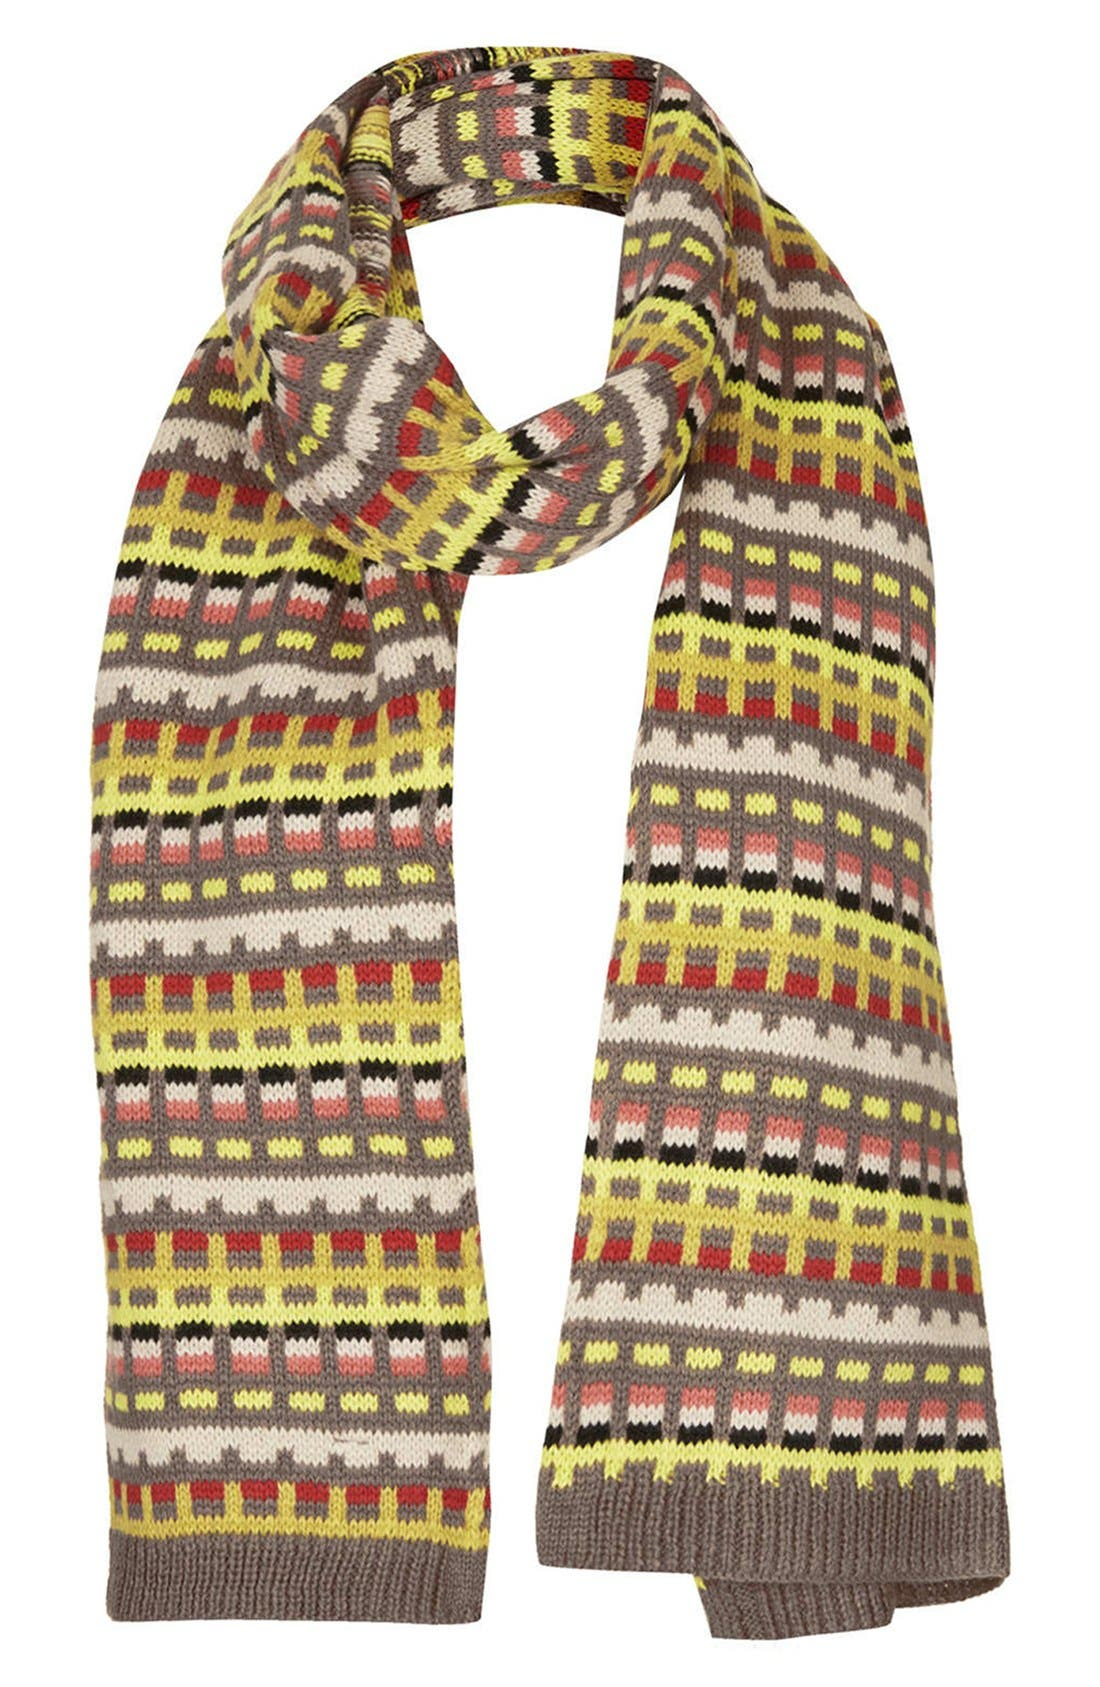 Alternate Image 1 Selected - Topshop Geometric Intarsia Knit Scarf